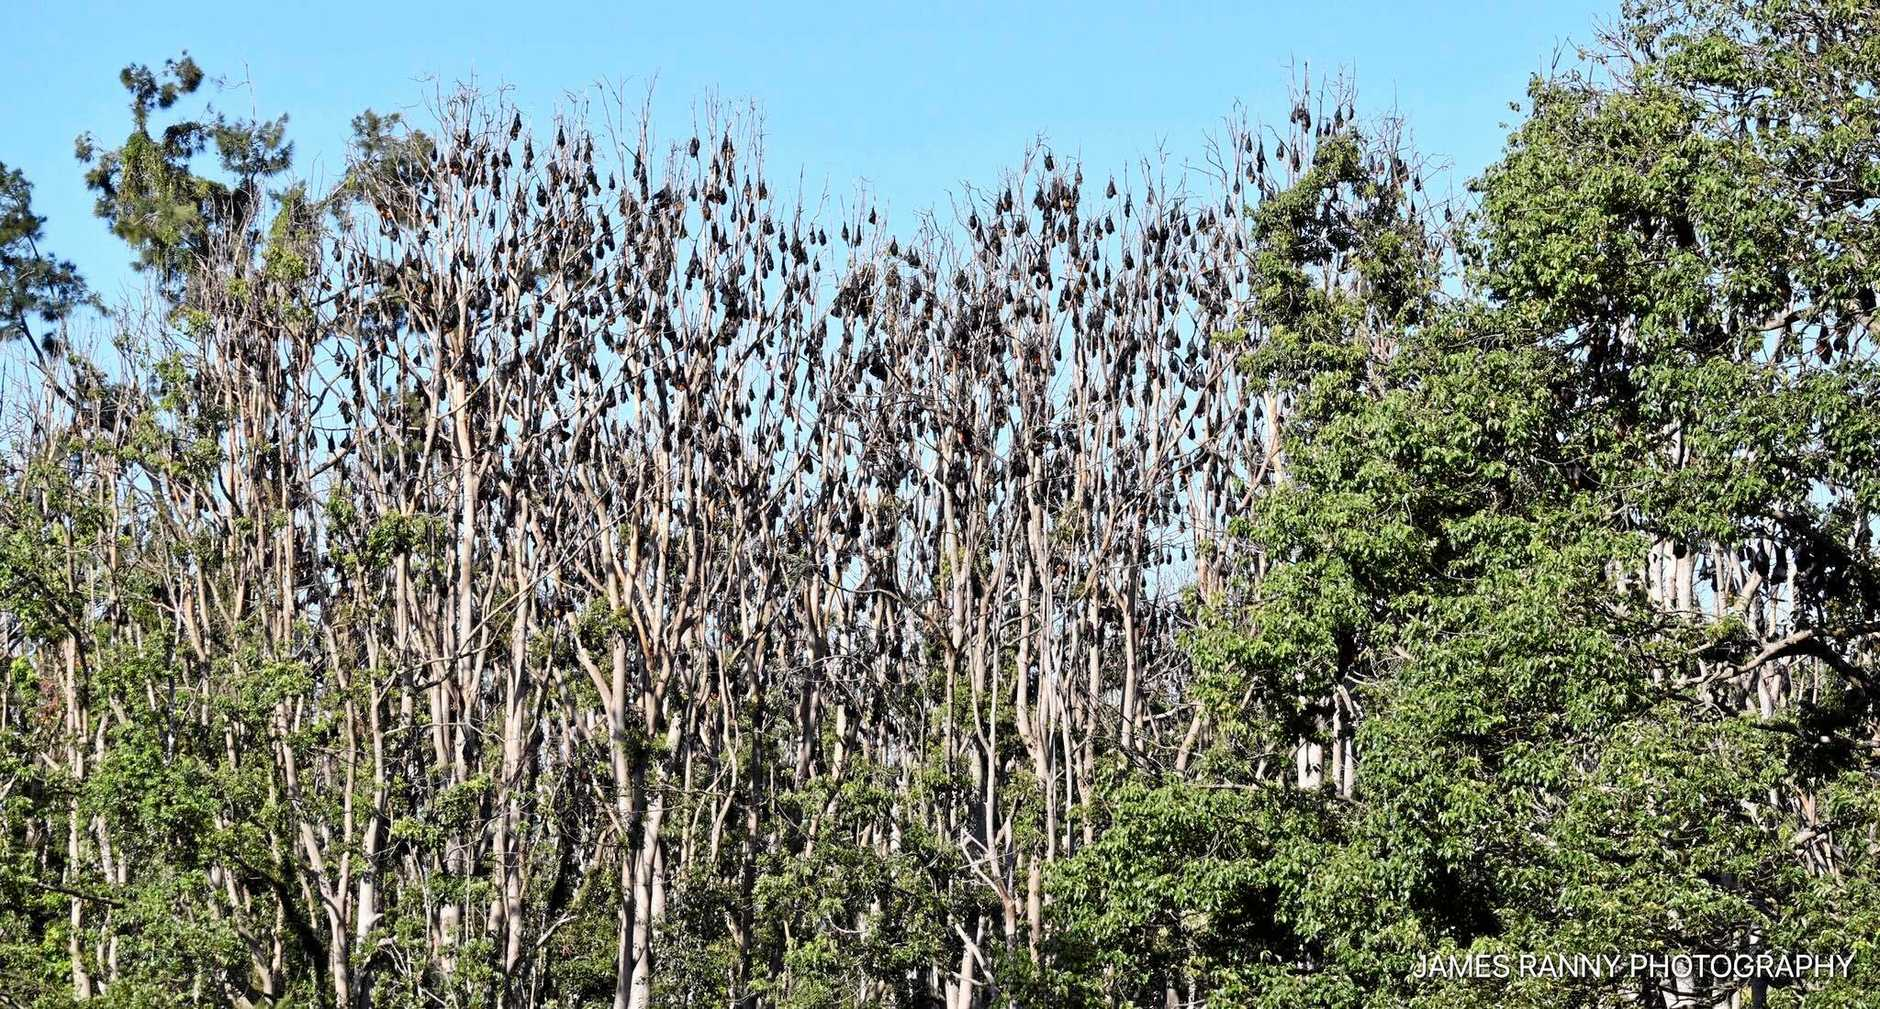 The colony of flying foxes at Glenreagh before the heatwave struck.